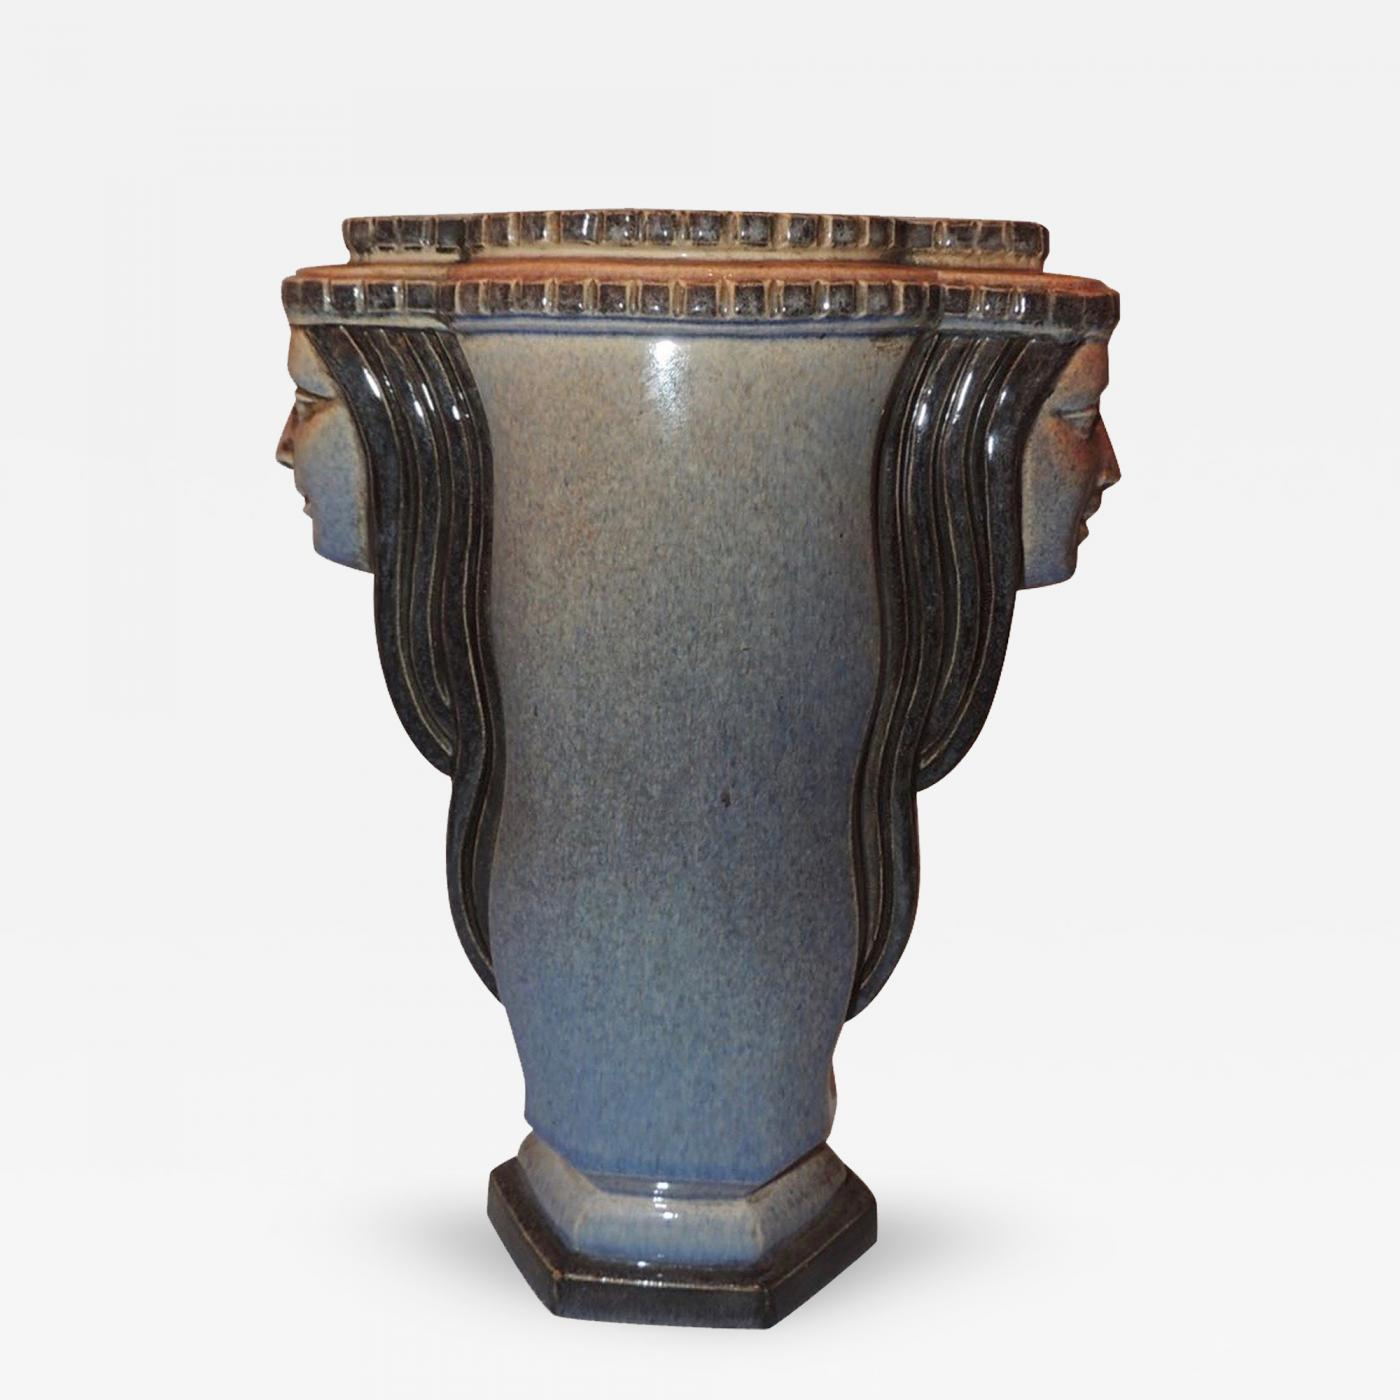 Marcel flix guillard art deco vase two faced by guillard listings decorative arts objects vases jars urns floridaeventfo Image collections